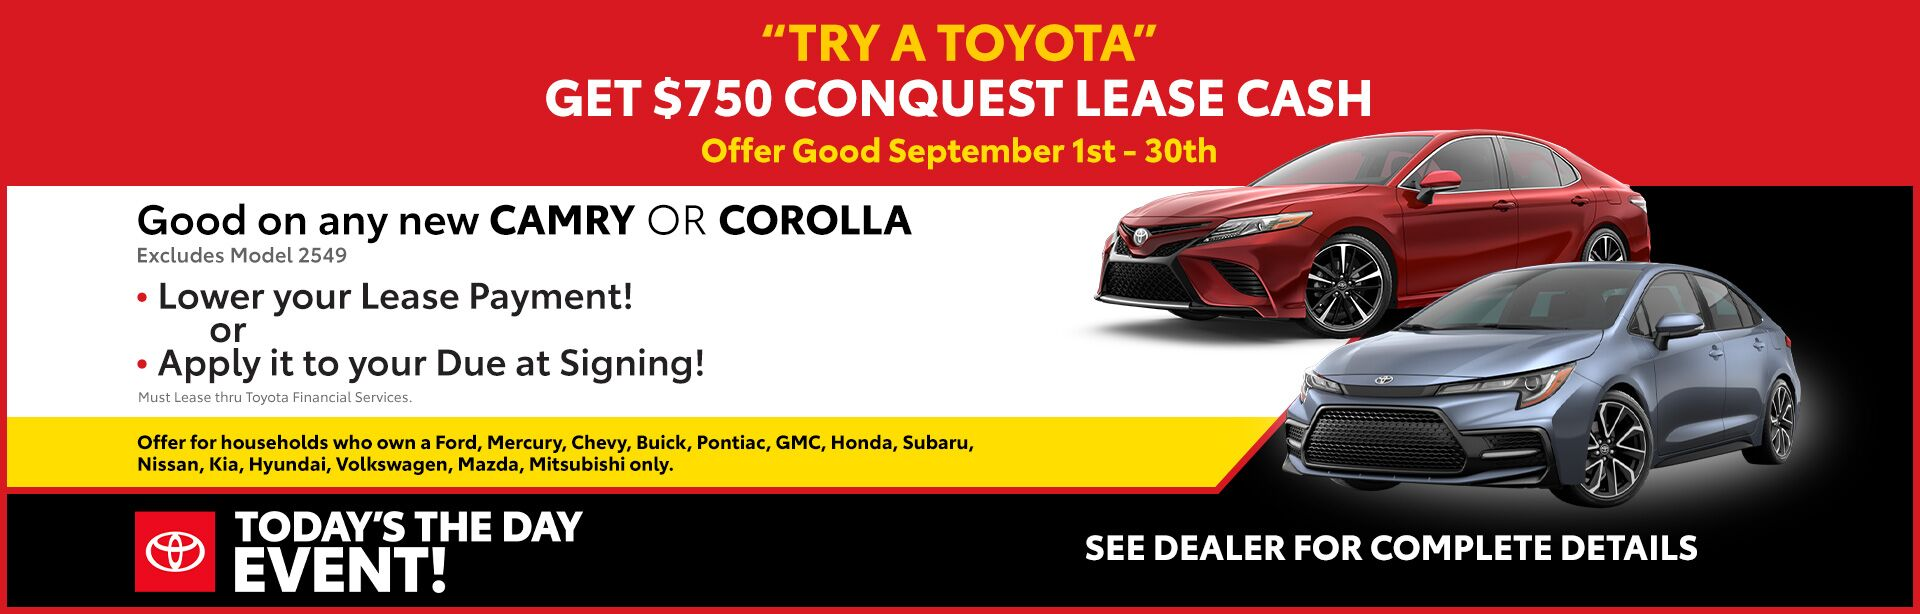 conquest Lease Cash - Corolla and Camry